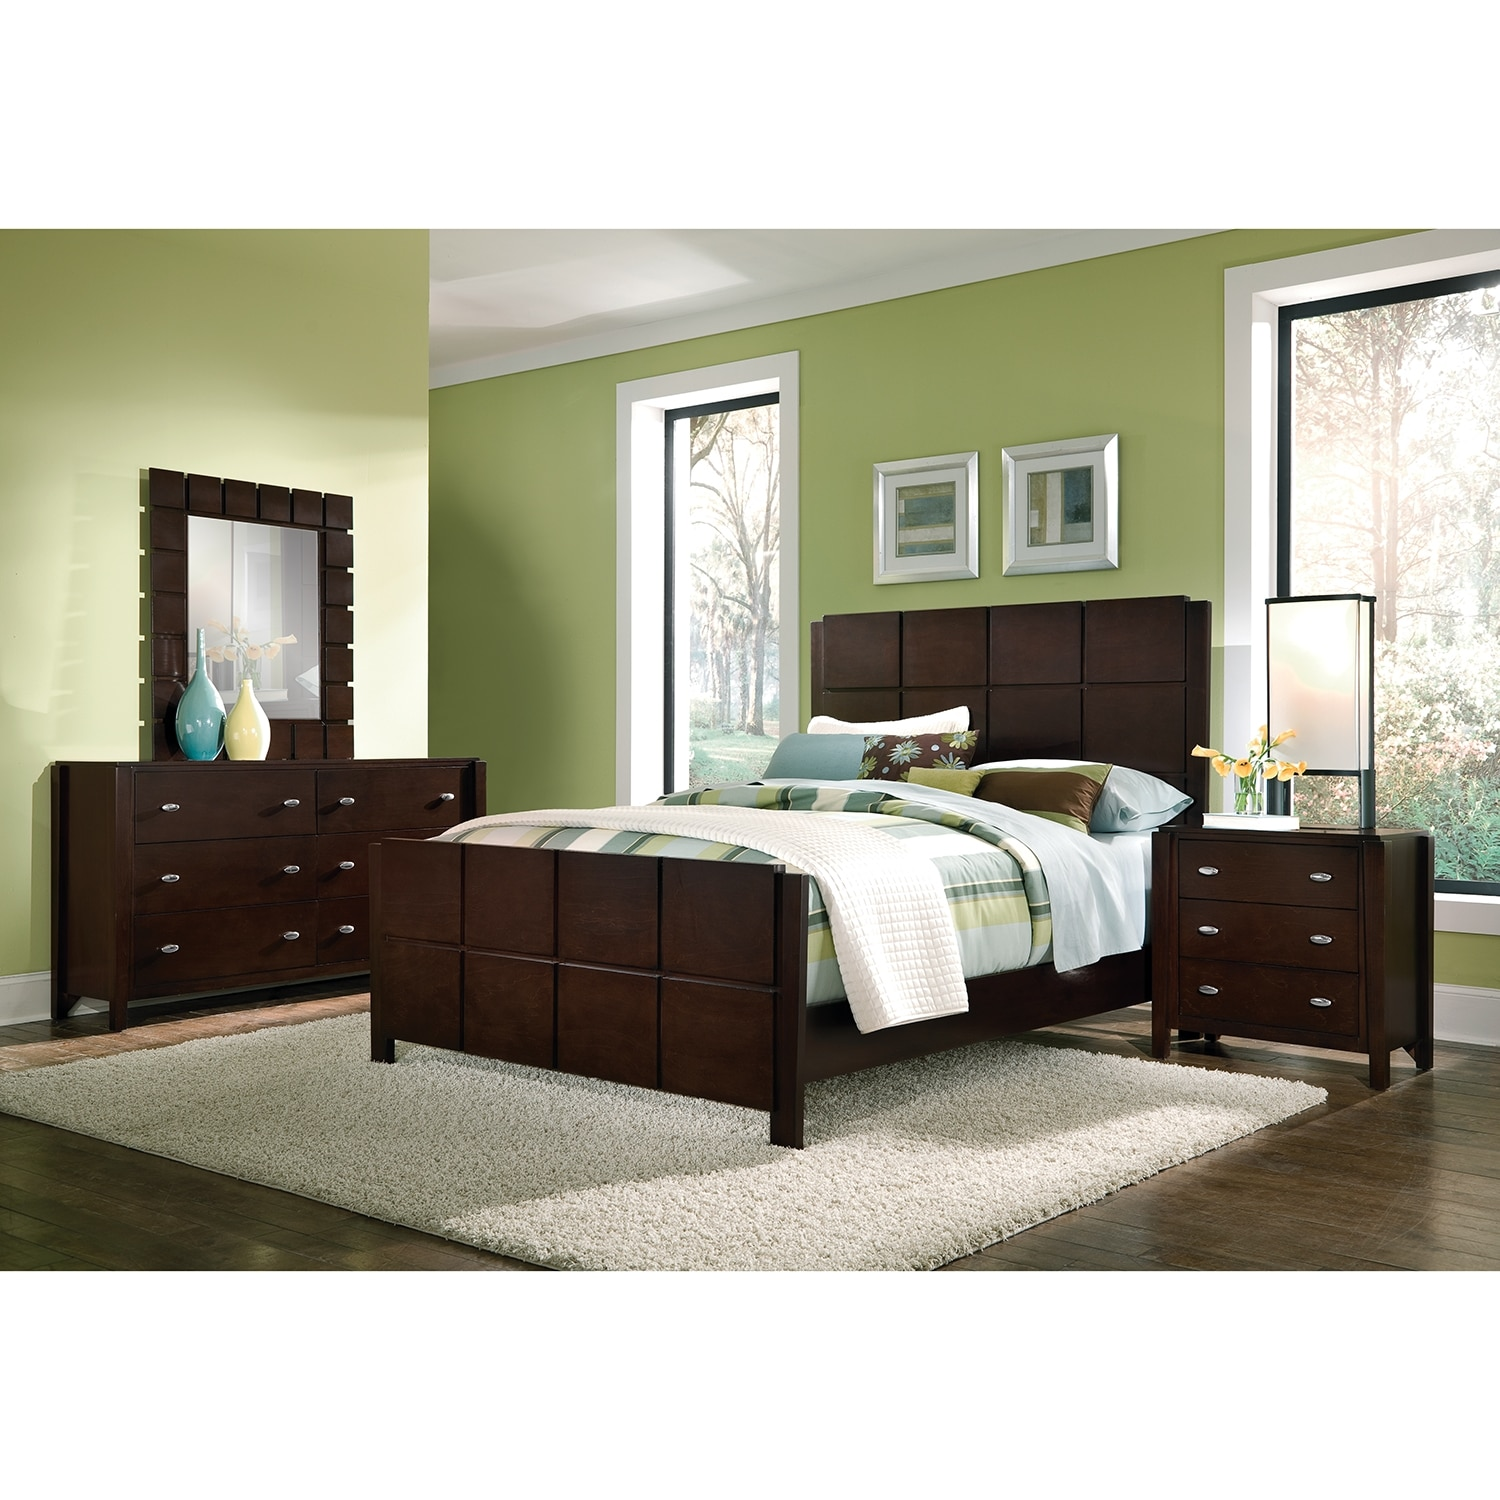 Mosaic 6-Piece King Bedroom Set - Dark Brown | Value City ...